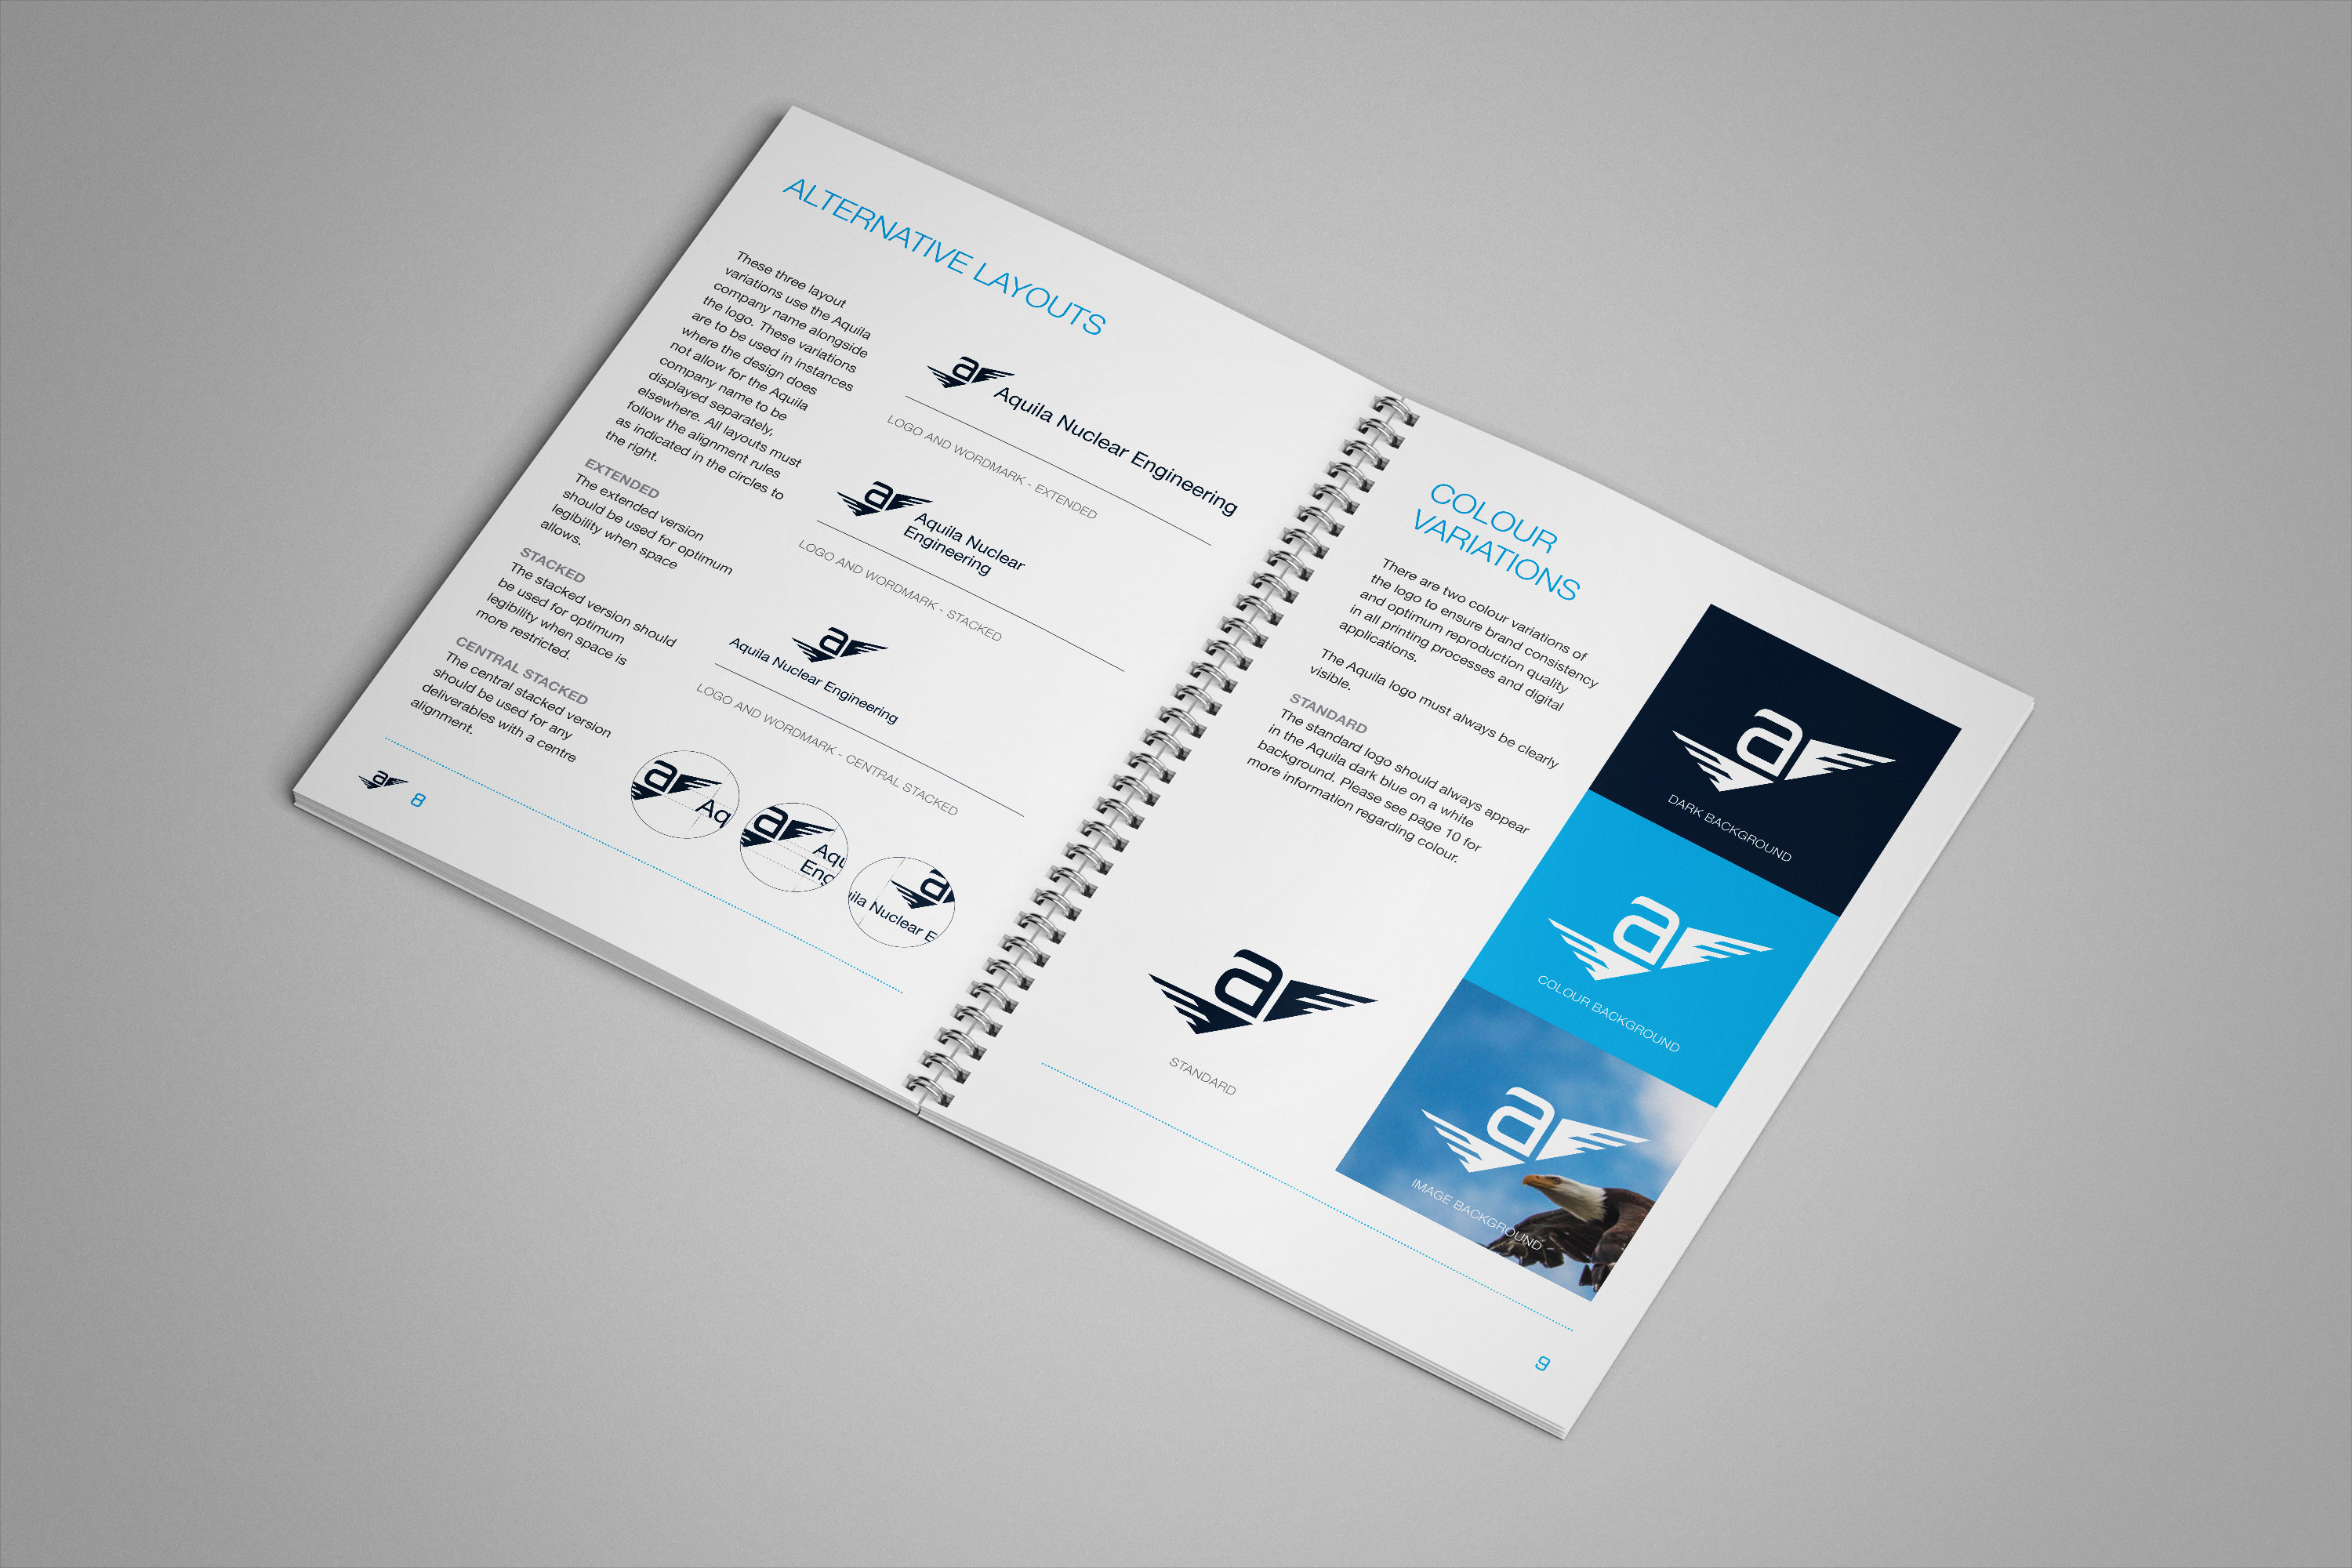 Aquila brand guidelines